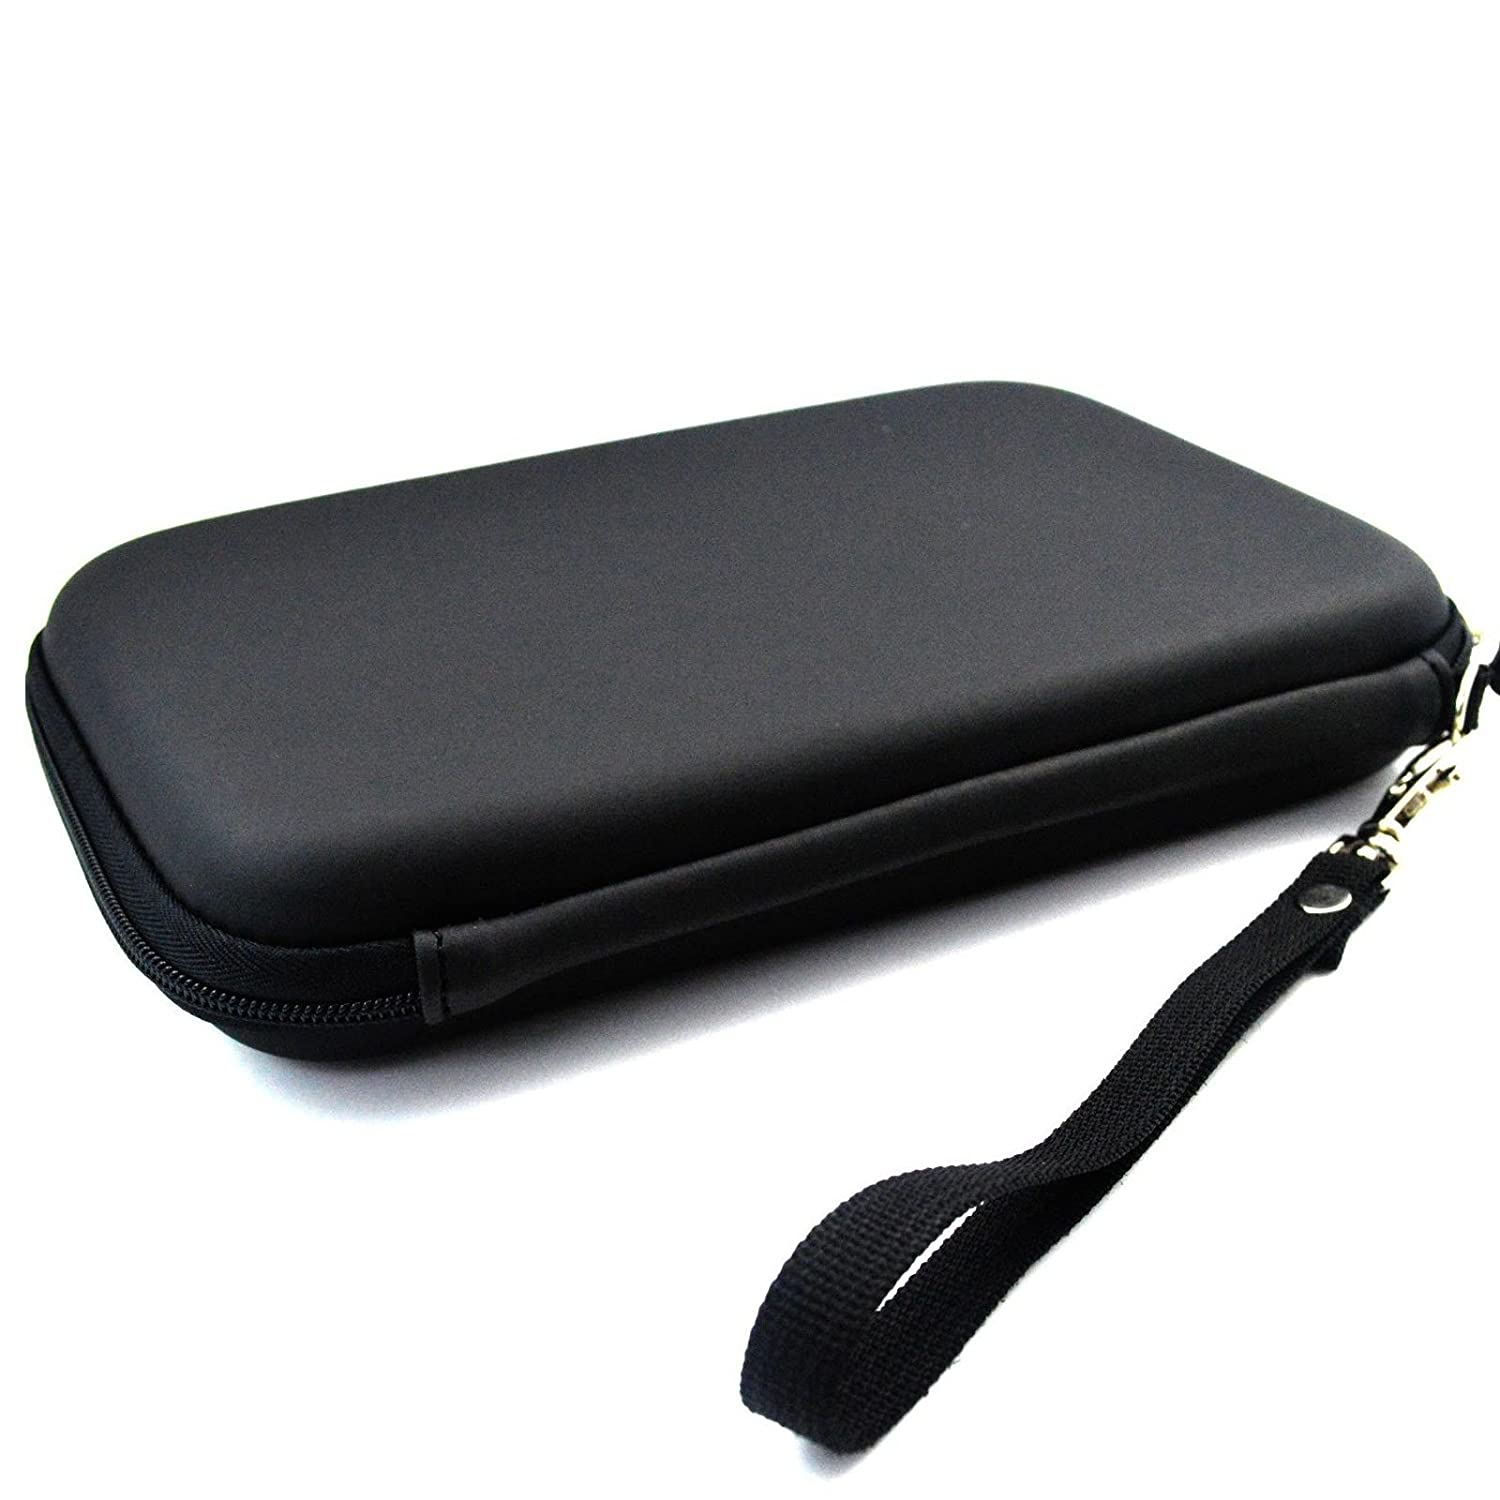 TOPEPOP GPS Carrying Case Portable Hard Shell Protective Pouch Storage Bag Hard GPS Case Compatible with Car GPS Navigator Garmin Nuvi Tomtom Magellan Roadmate 4332954339